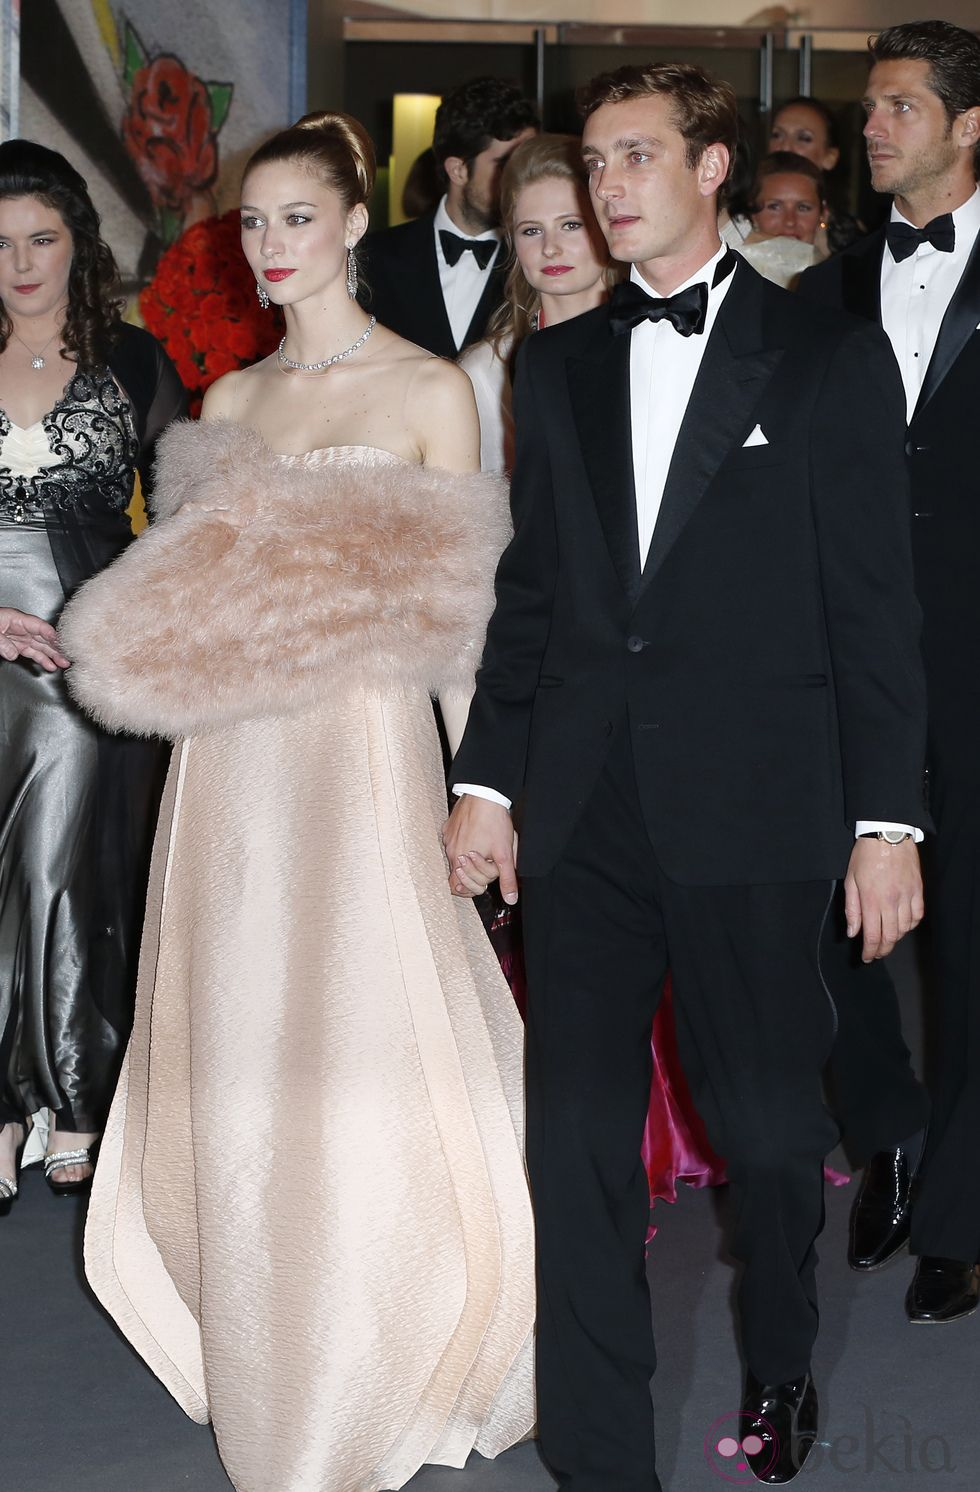 Pierre Casiraghi and Beatrice Borromeo's wedding date